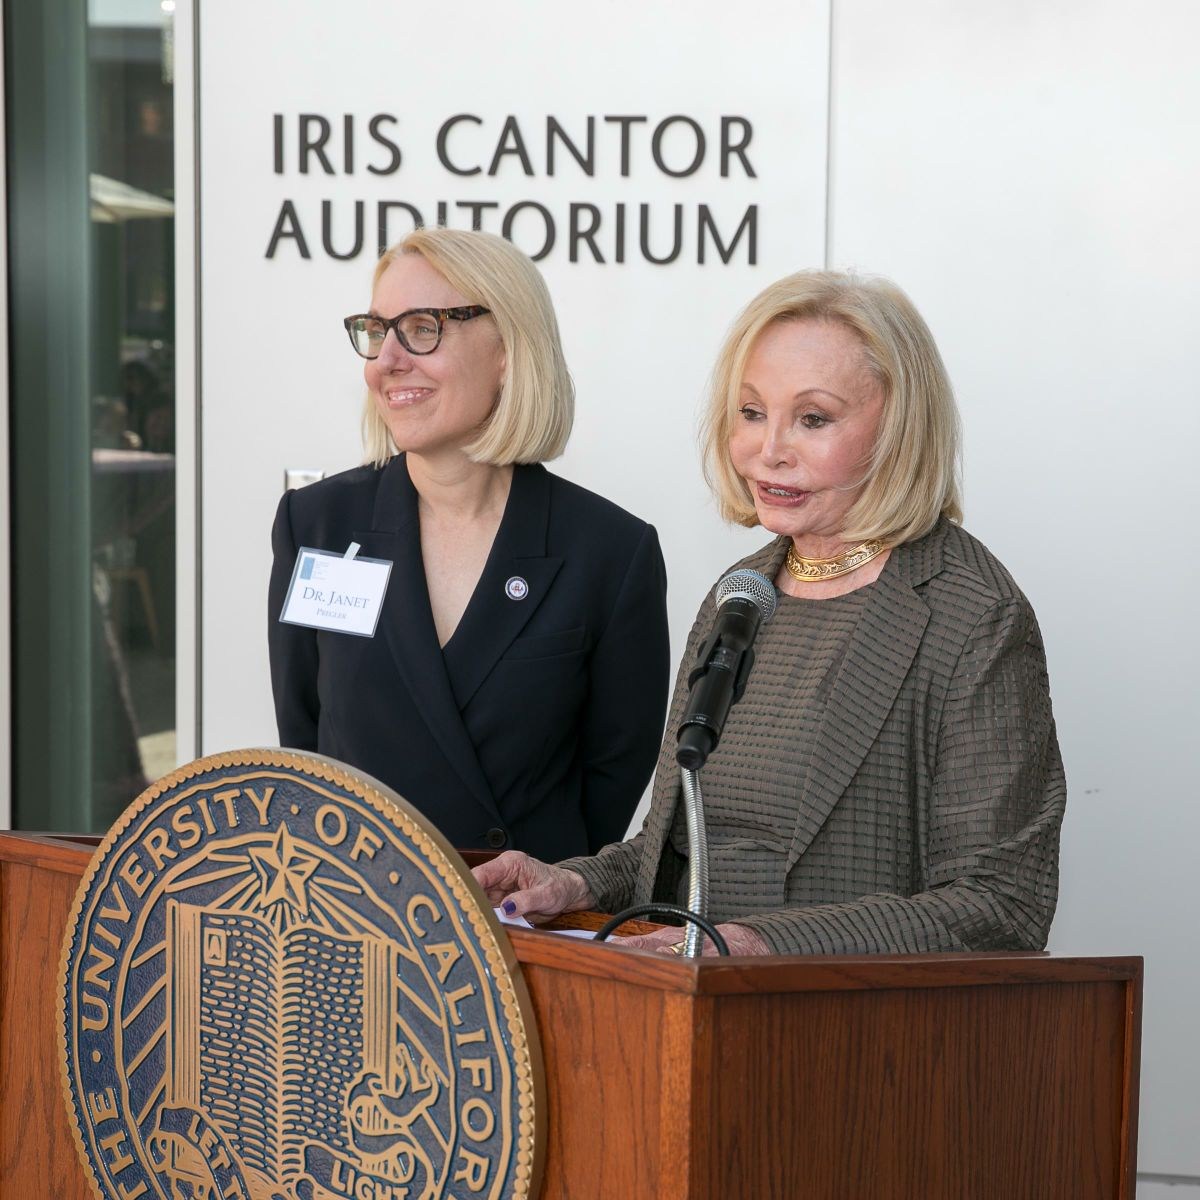 Dr. Janet Pregler and Iris Cantor